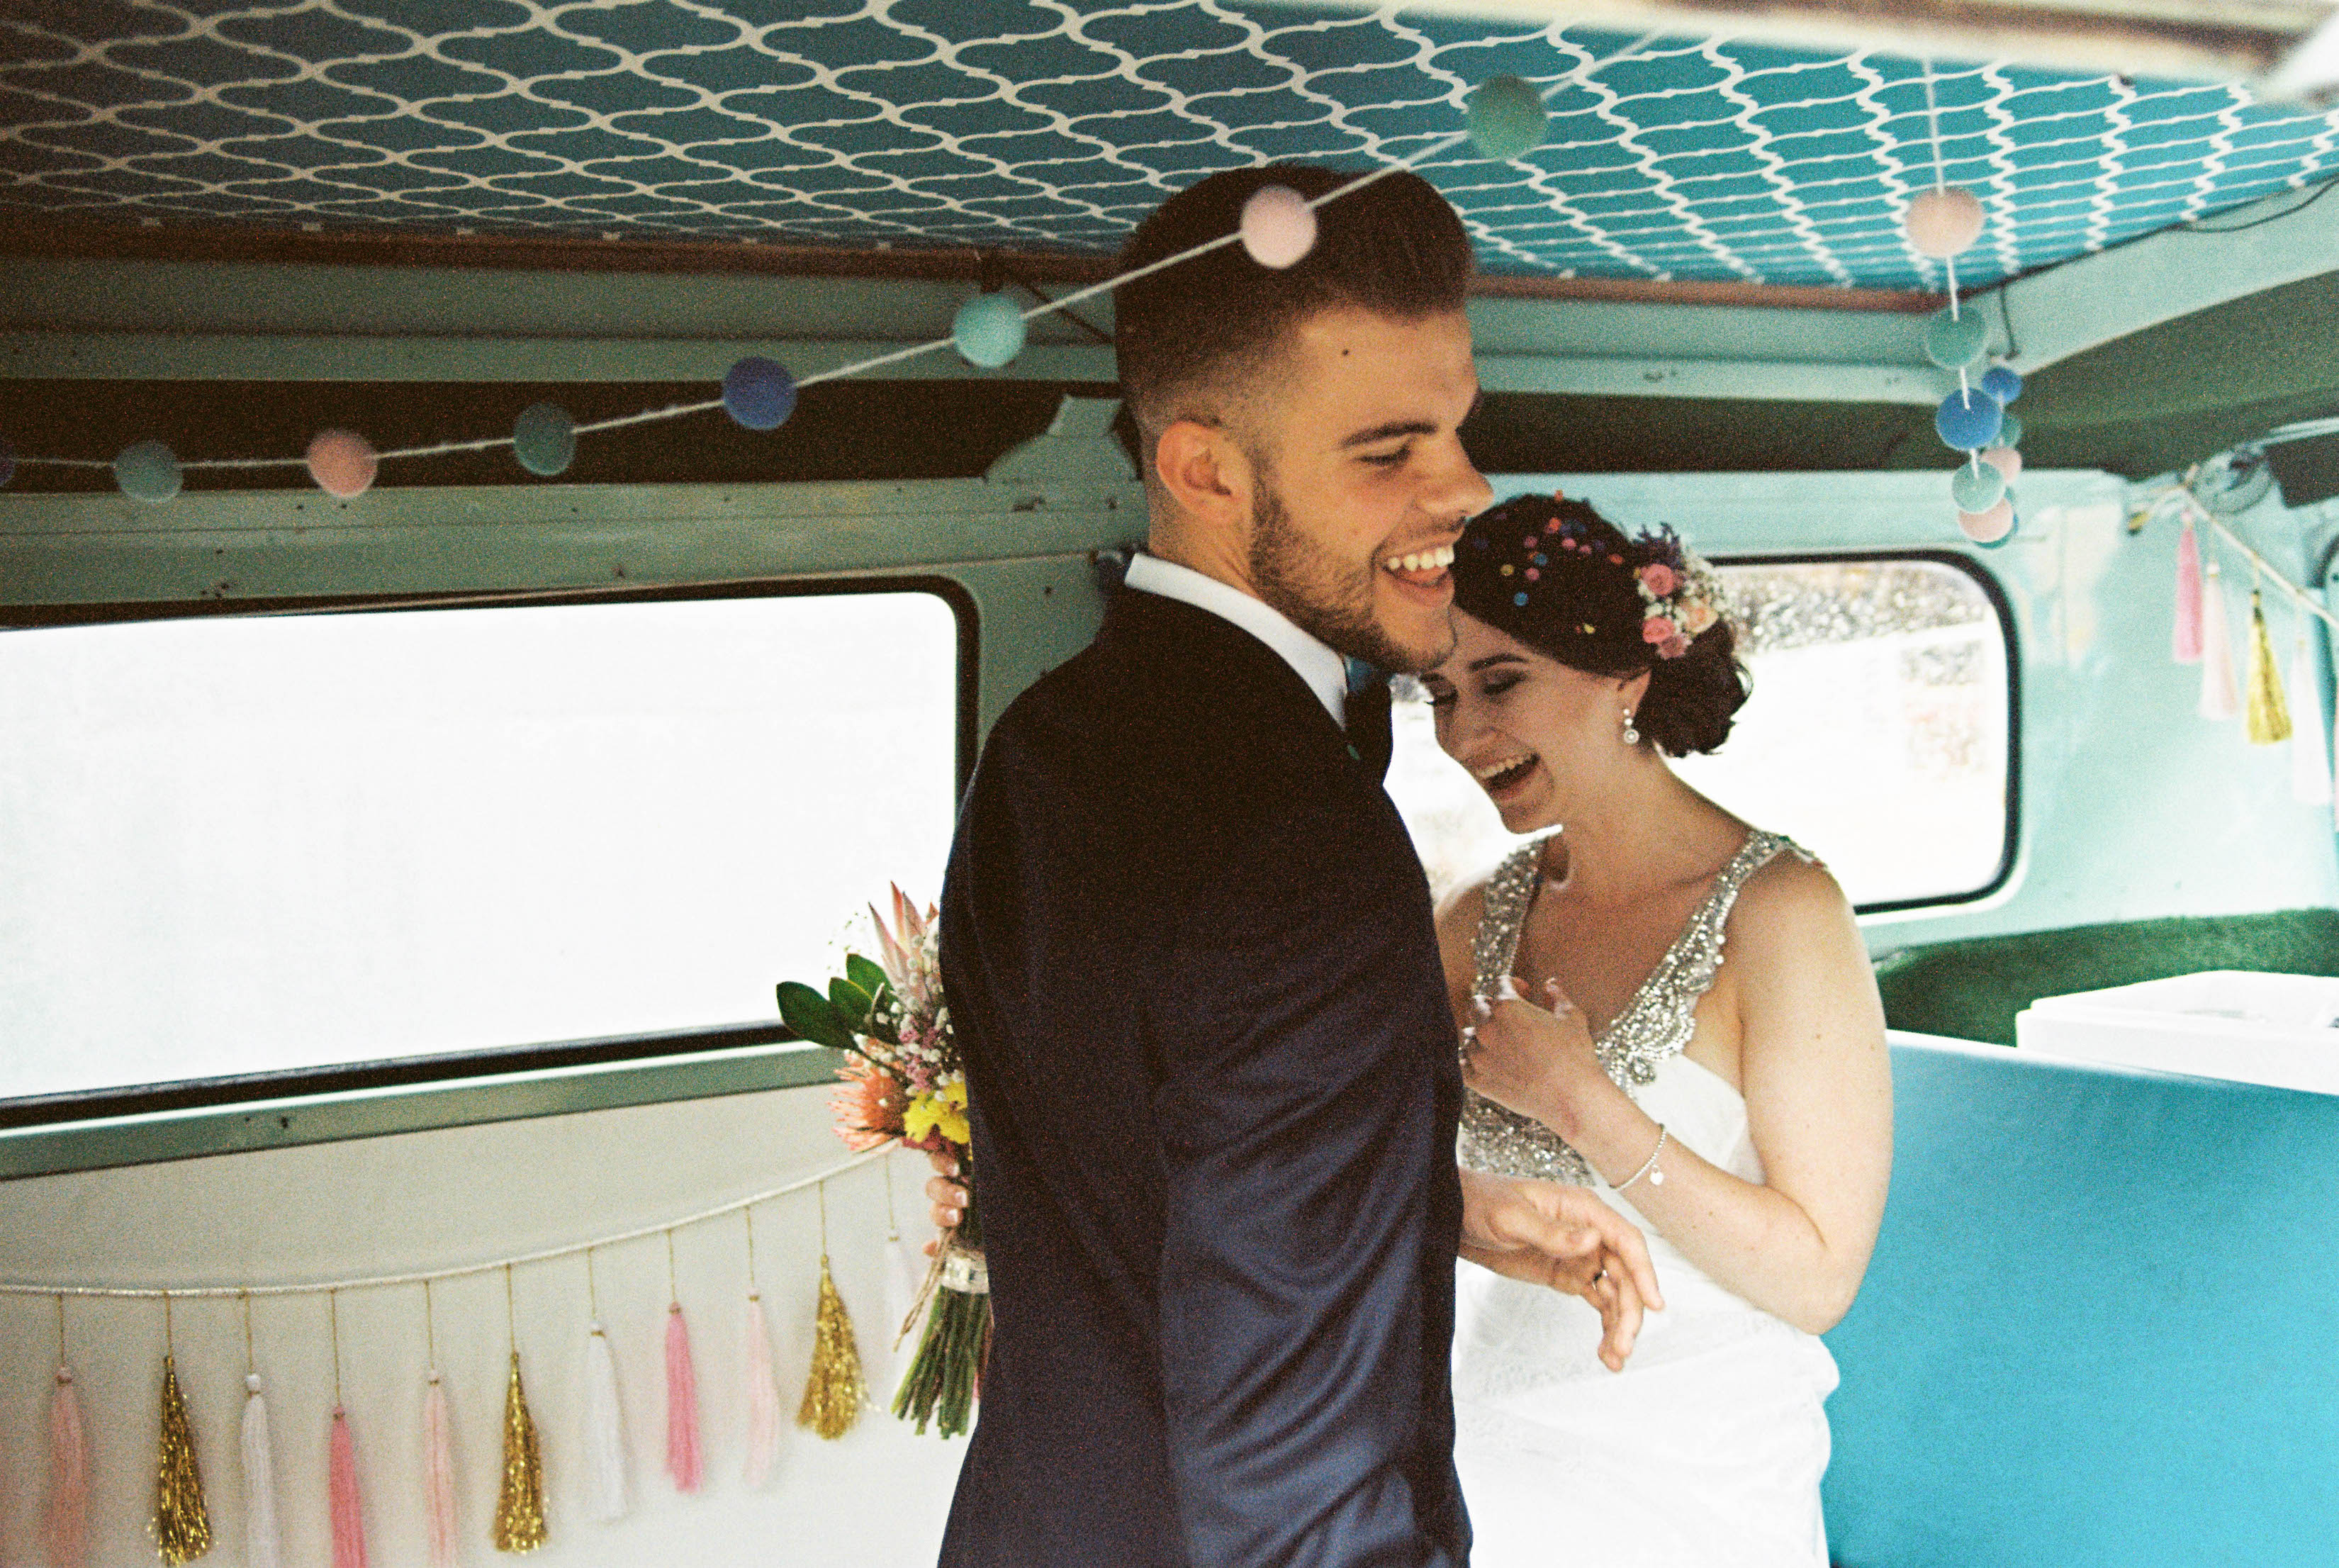 A photo of the bride & groom laughing together in a vintage Combi Van after their Bridgetown wedding